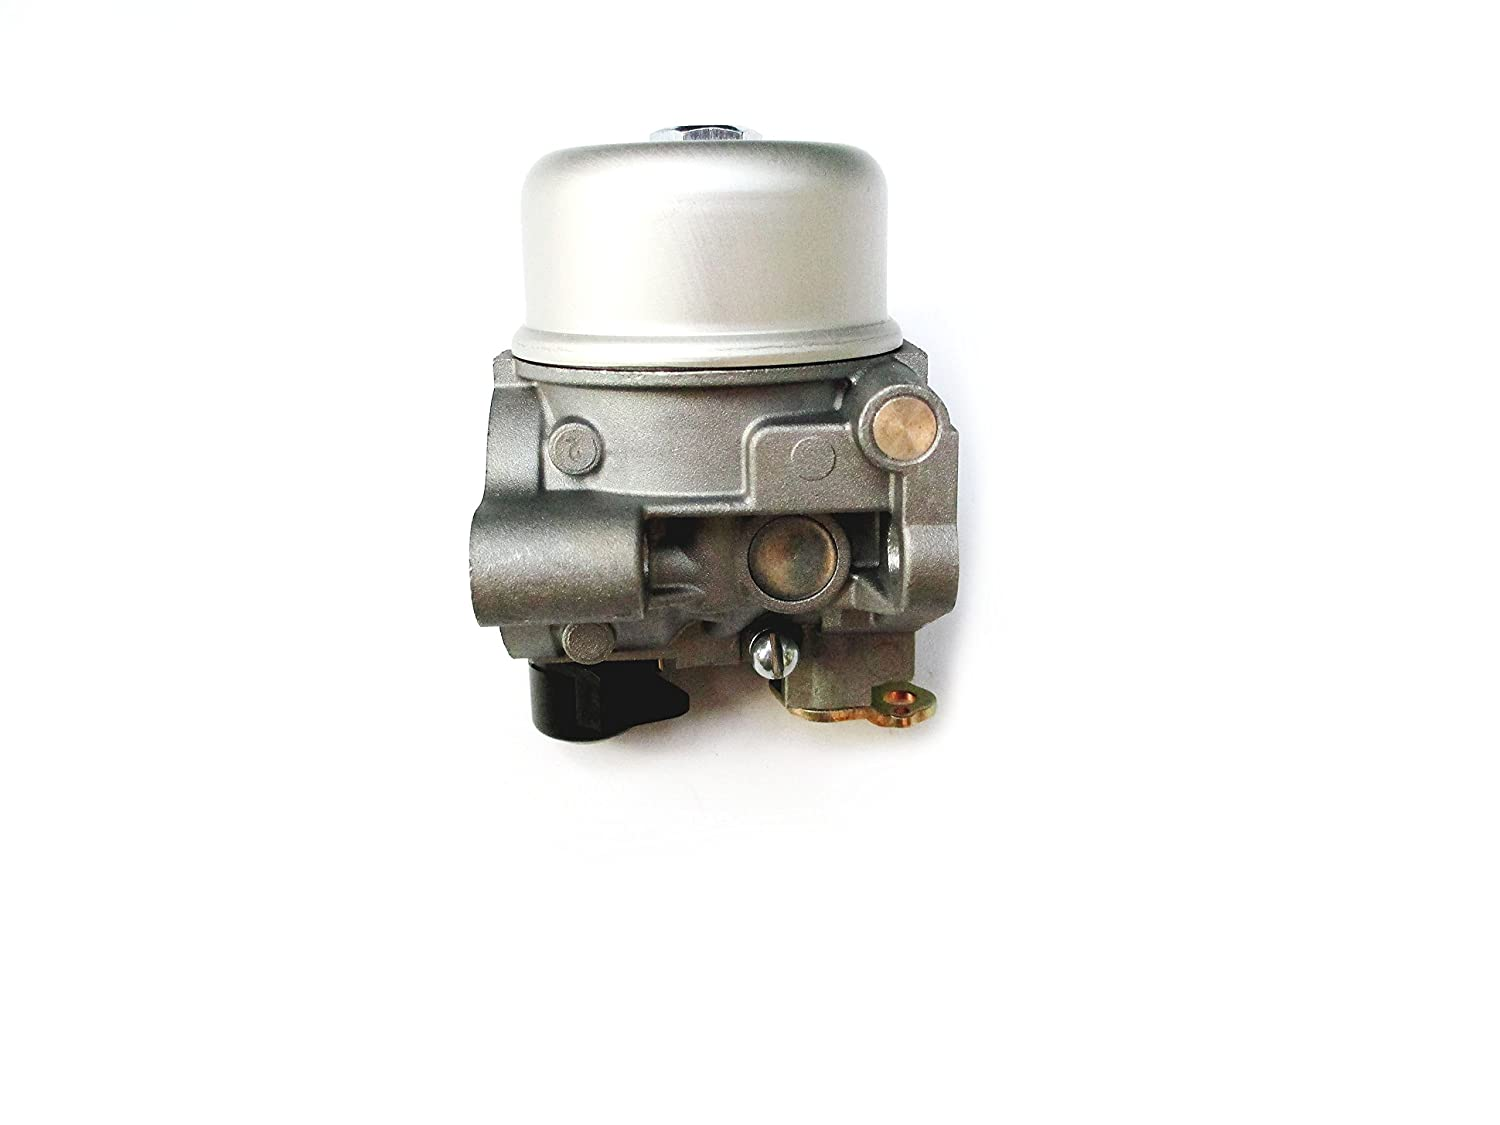 Amazon com: New Carburetor Fits John Deere LT133 LT150 LT155 LTR155